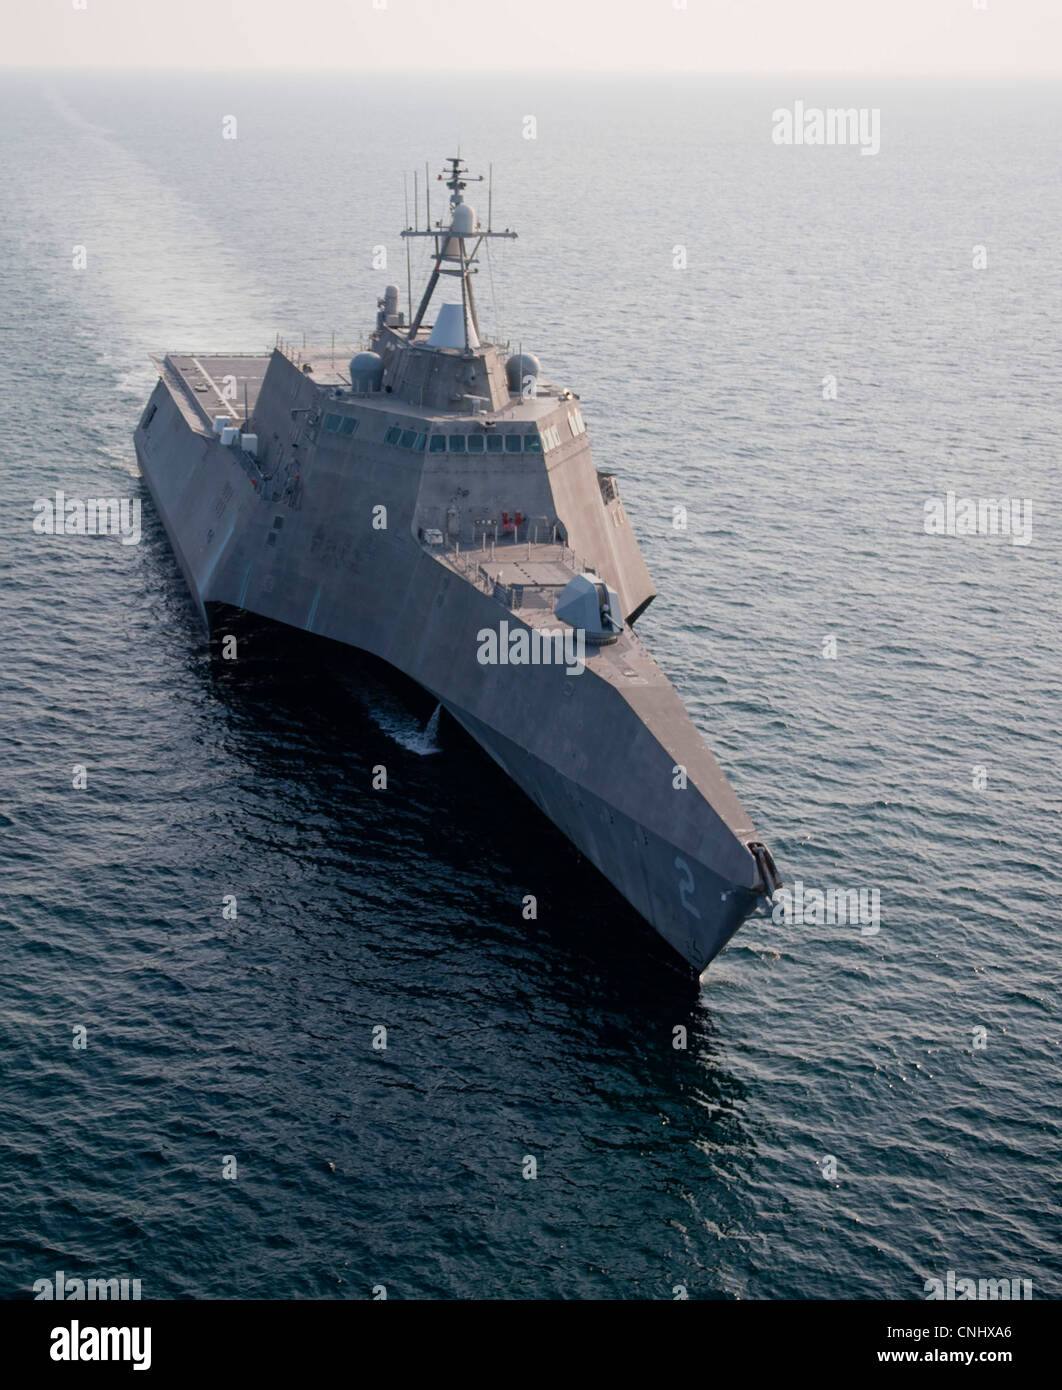 The new USS Independence, a littoral combat ship, steams through the Atlantic Ocean April 9, 2012 off the coast - Stock Image